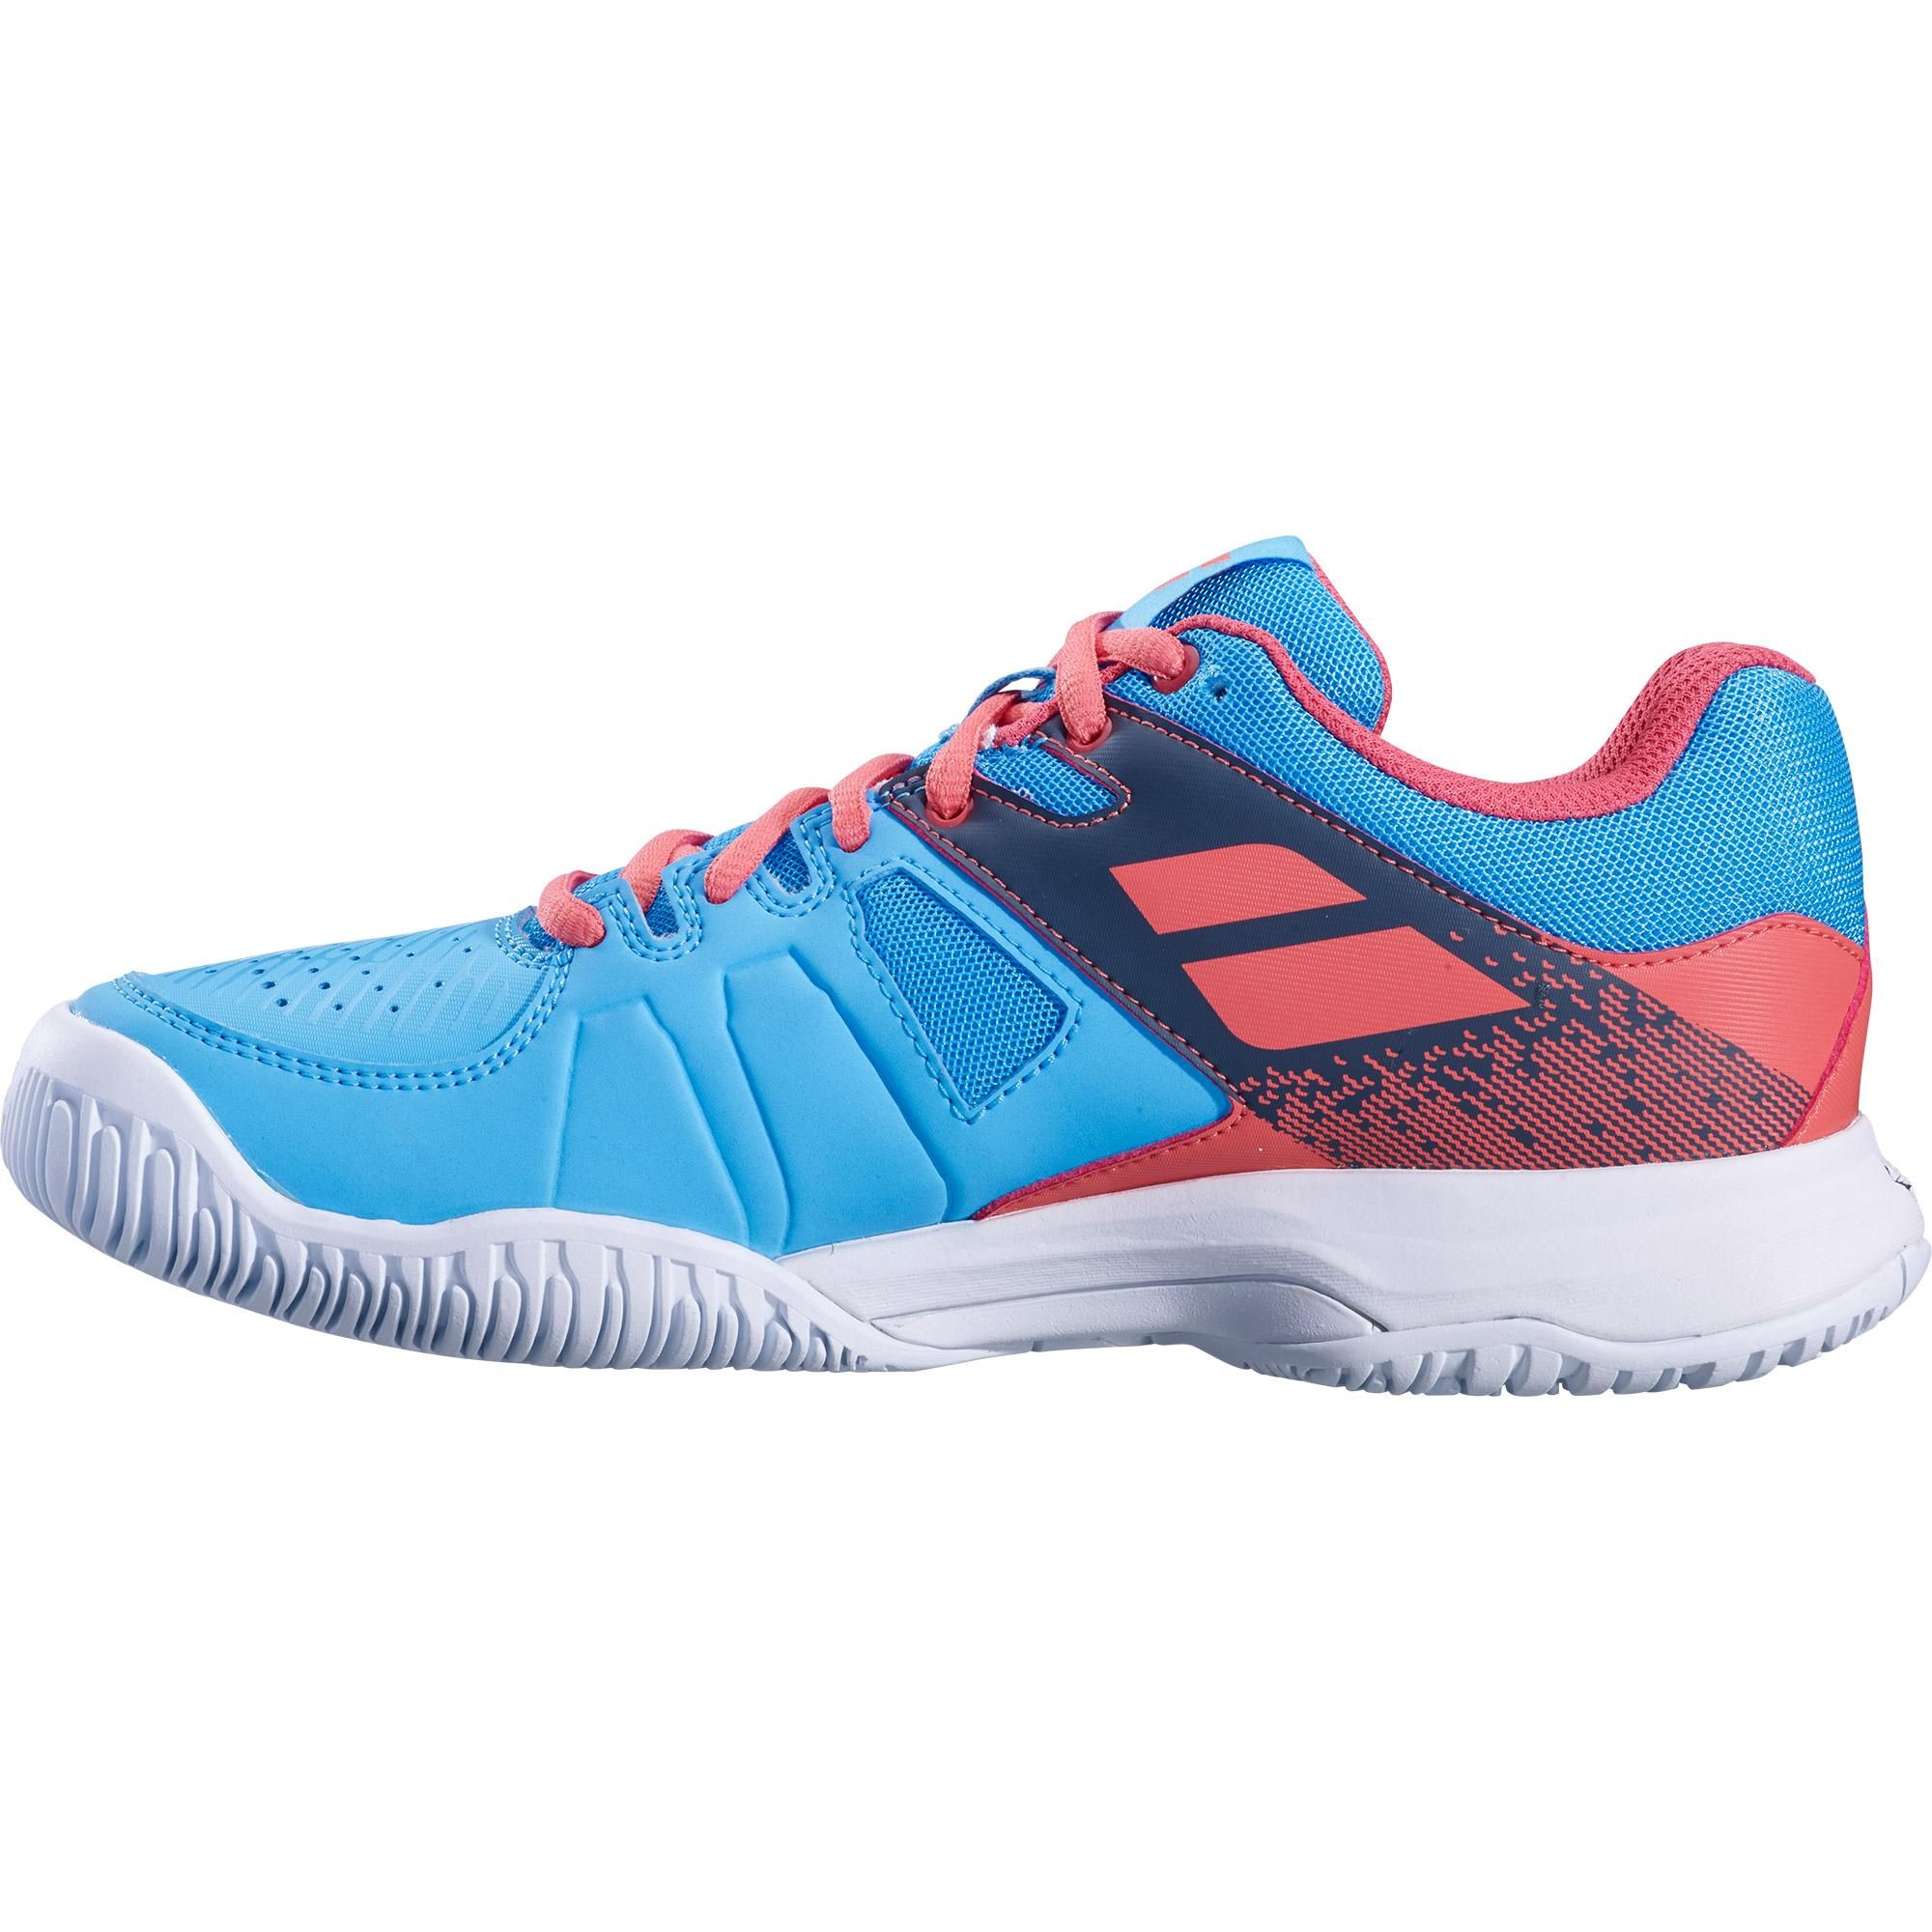 57039cca9963 Babolat Womens Pulsion Tennis Shoes - Sky Blue Pink - Tennisnuts.com